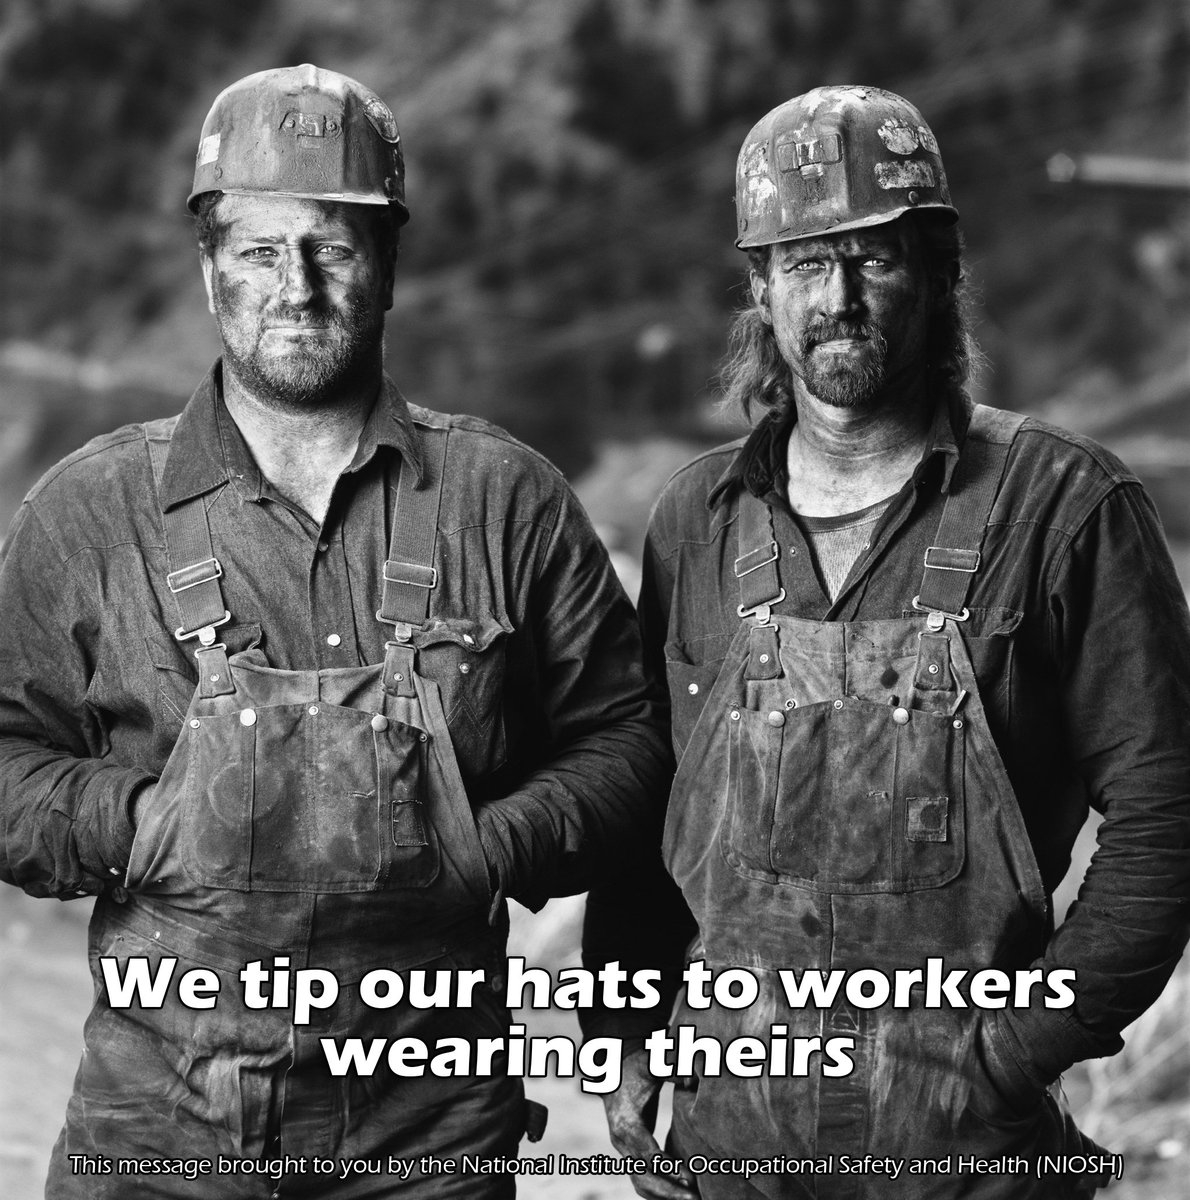 On #NationalHatDay we commend workers who promote safety & wear their protective headgear. https://t.co/78ZN8sOK07 https://t.co/xHd7a11wWs